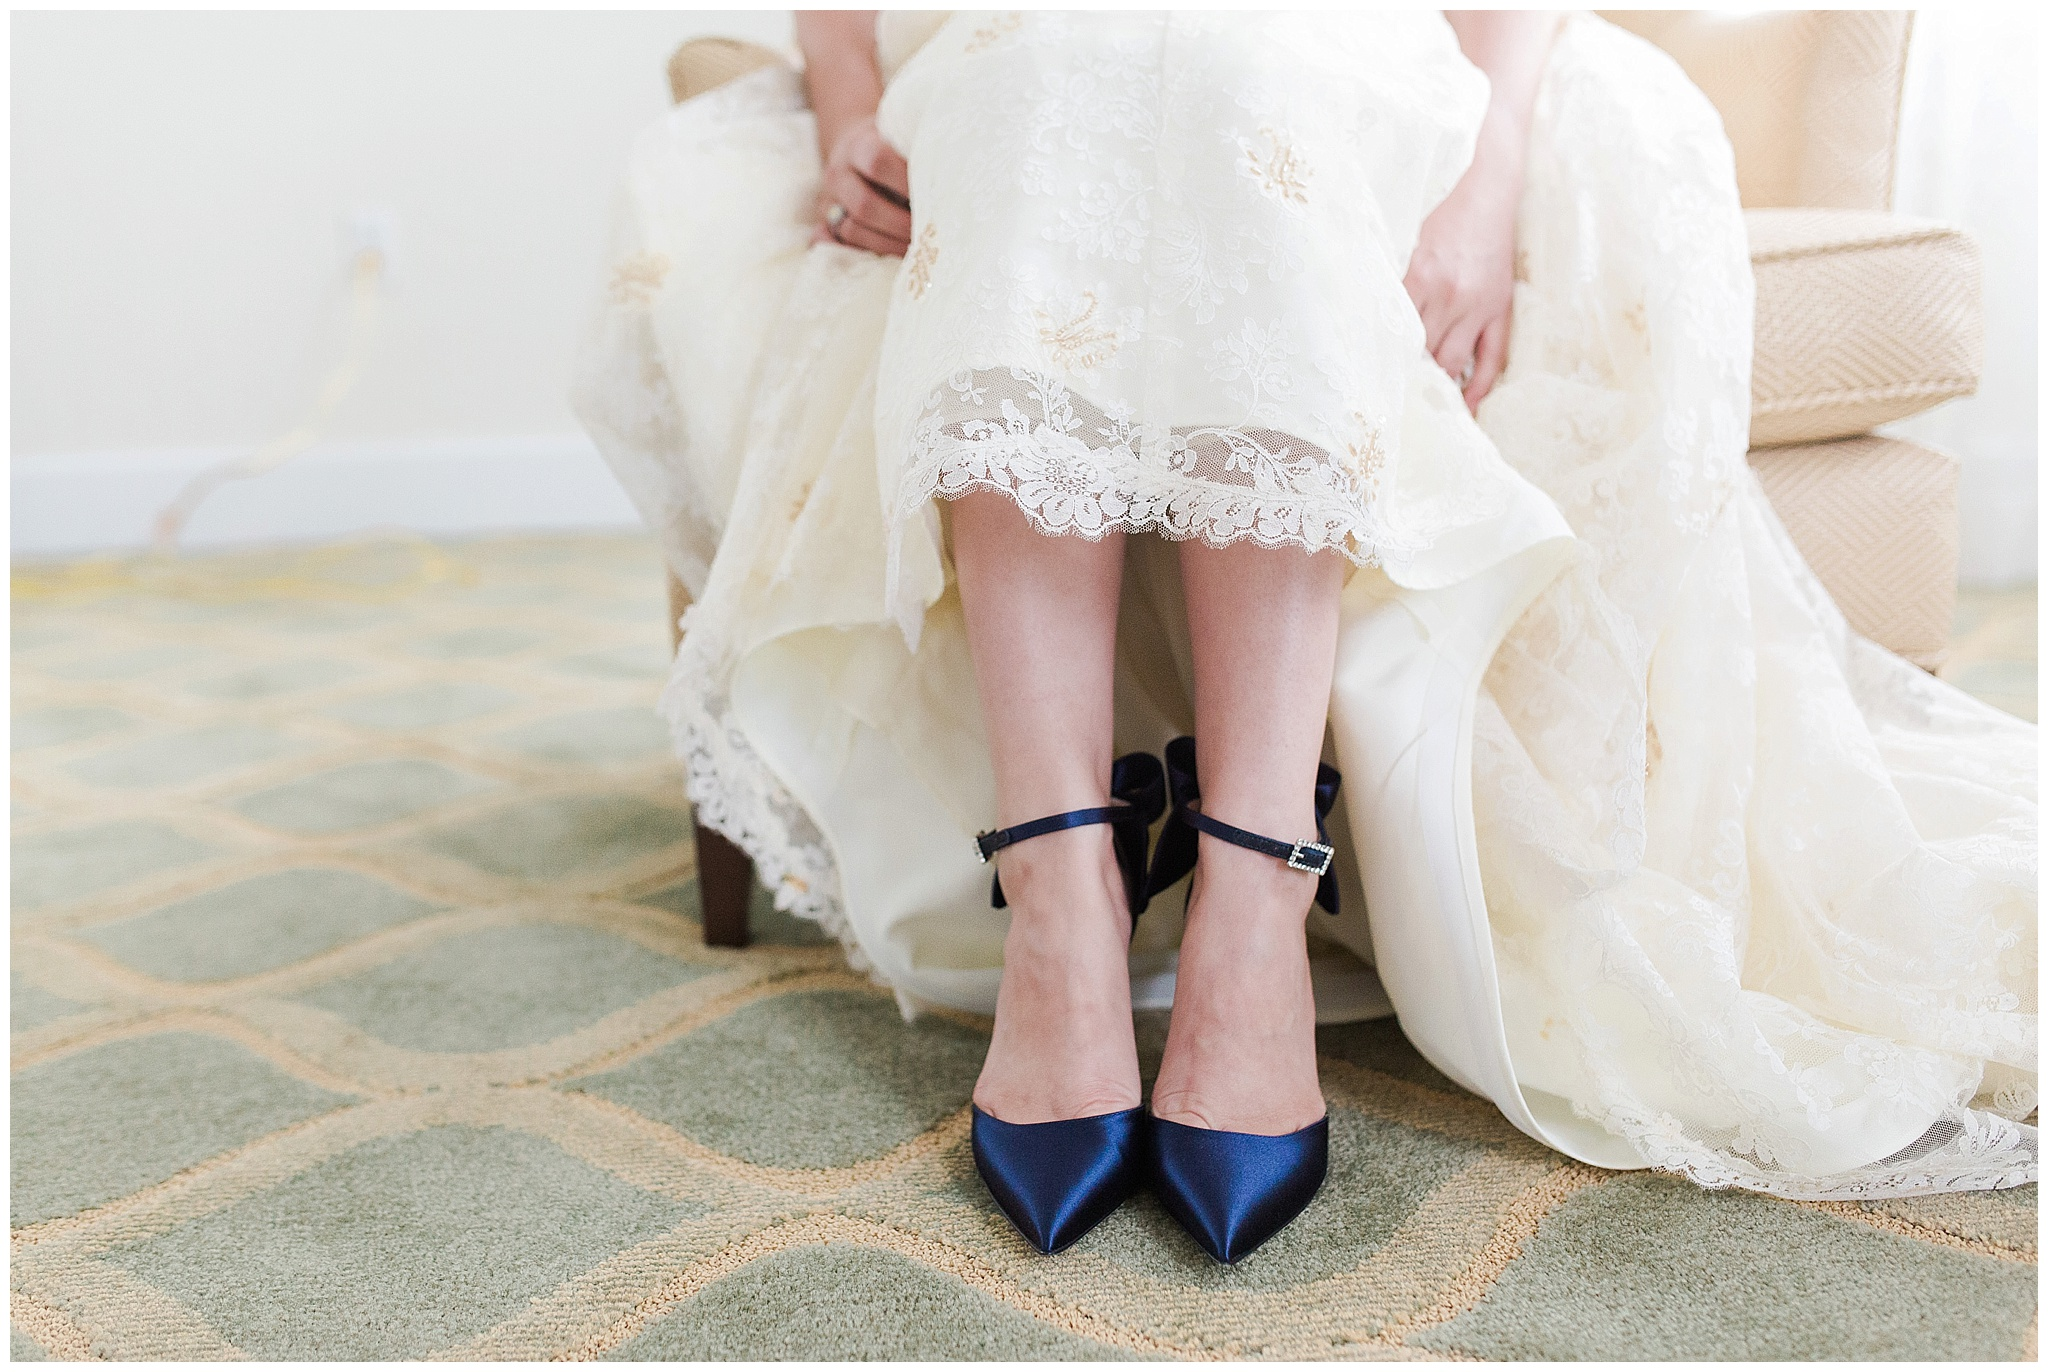 kimberly smith photography- south florida wedding photographer- stuart fl wedding photographer